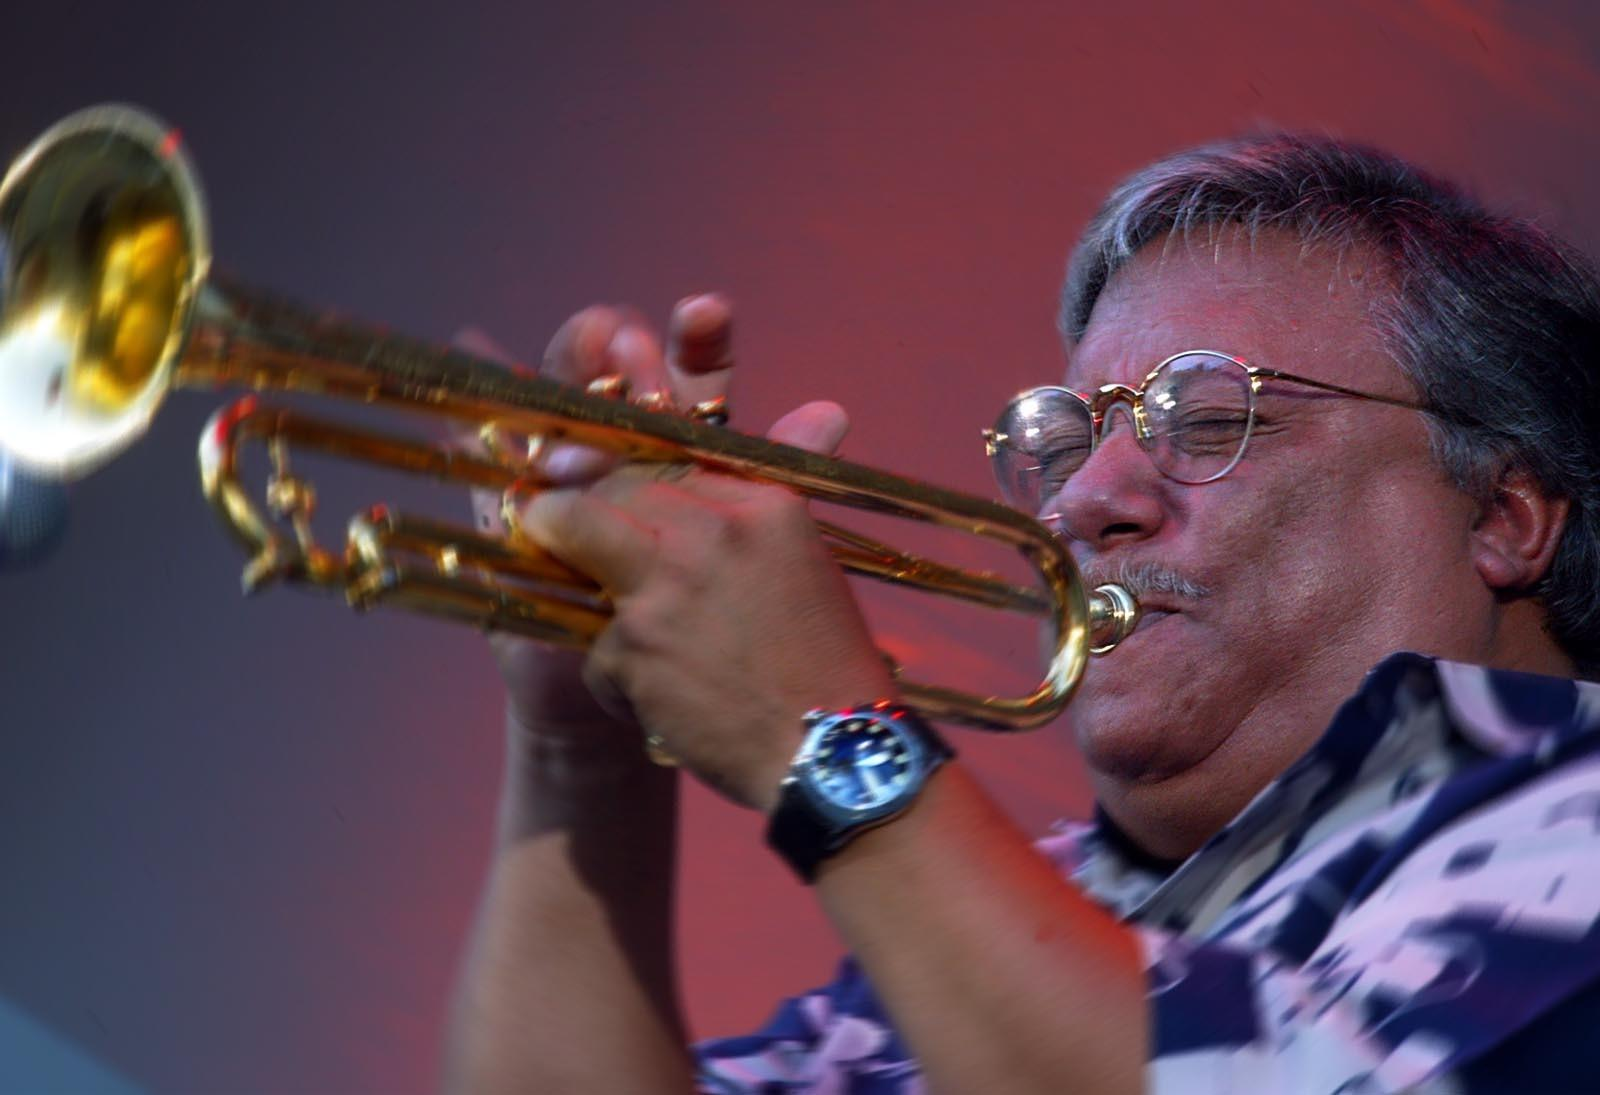 File Photo: Arturo Sandoval performs in June 2002, during the 24th Annual Playboy Jazz Festival at the Hollywood Bowl.